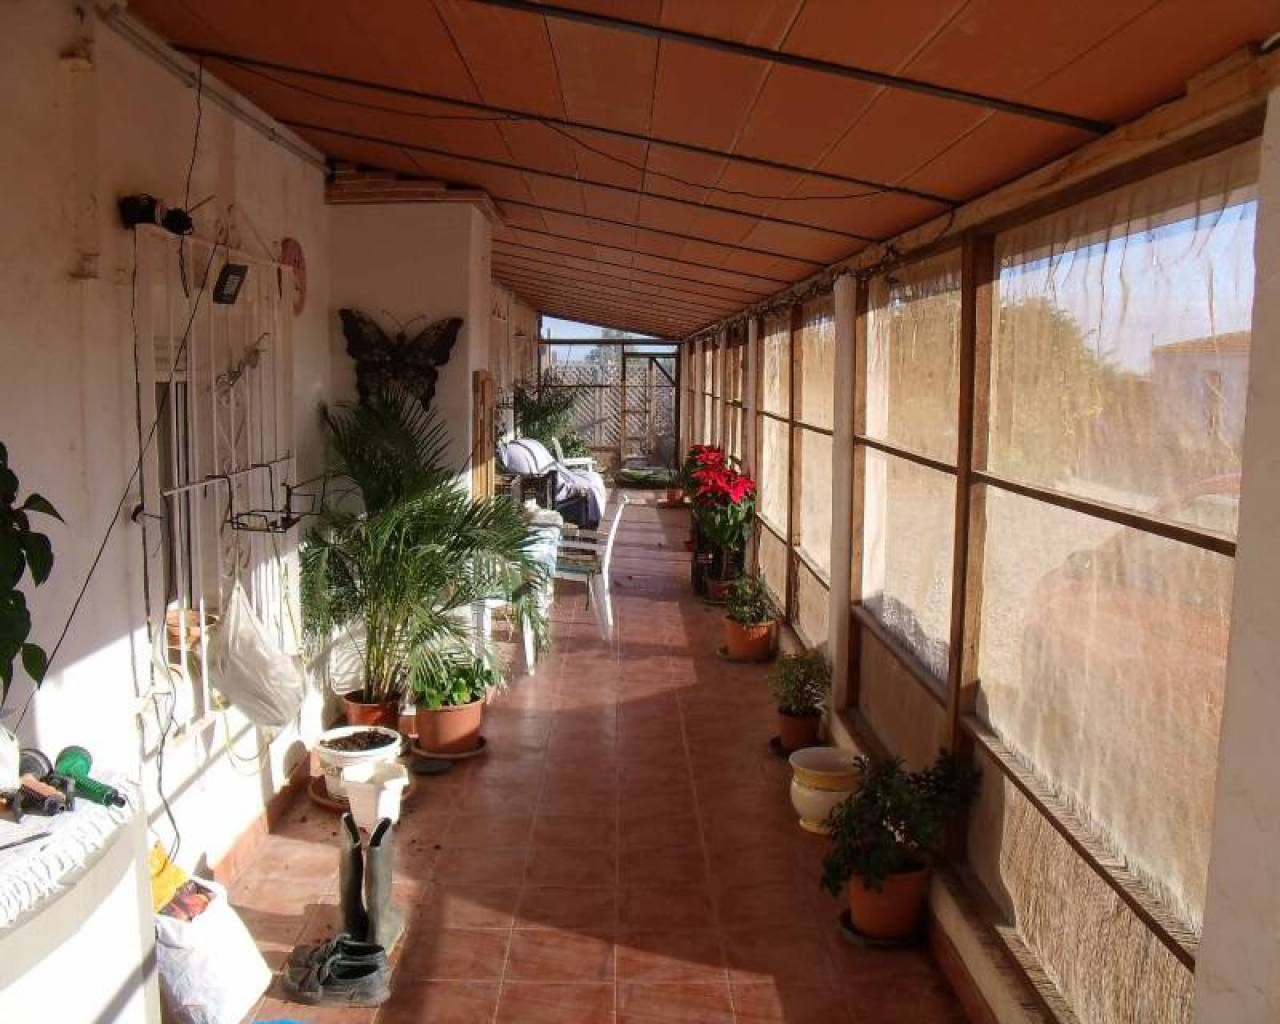 Sale - Country Property - La Pinilla